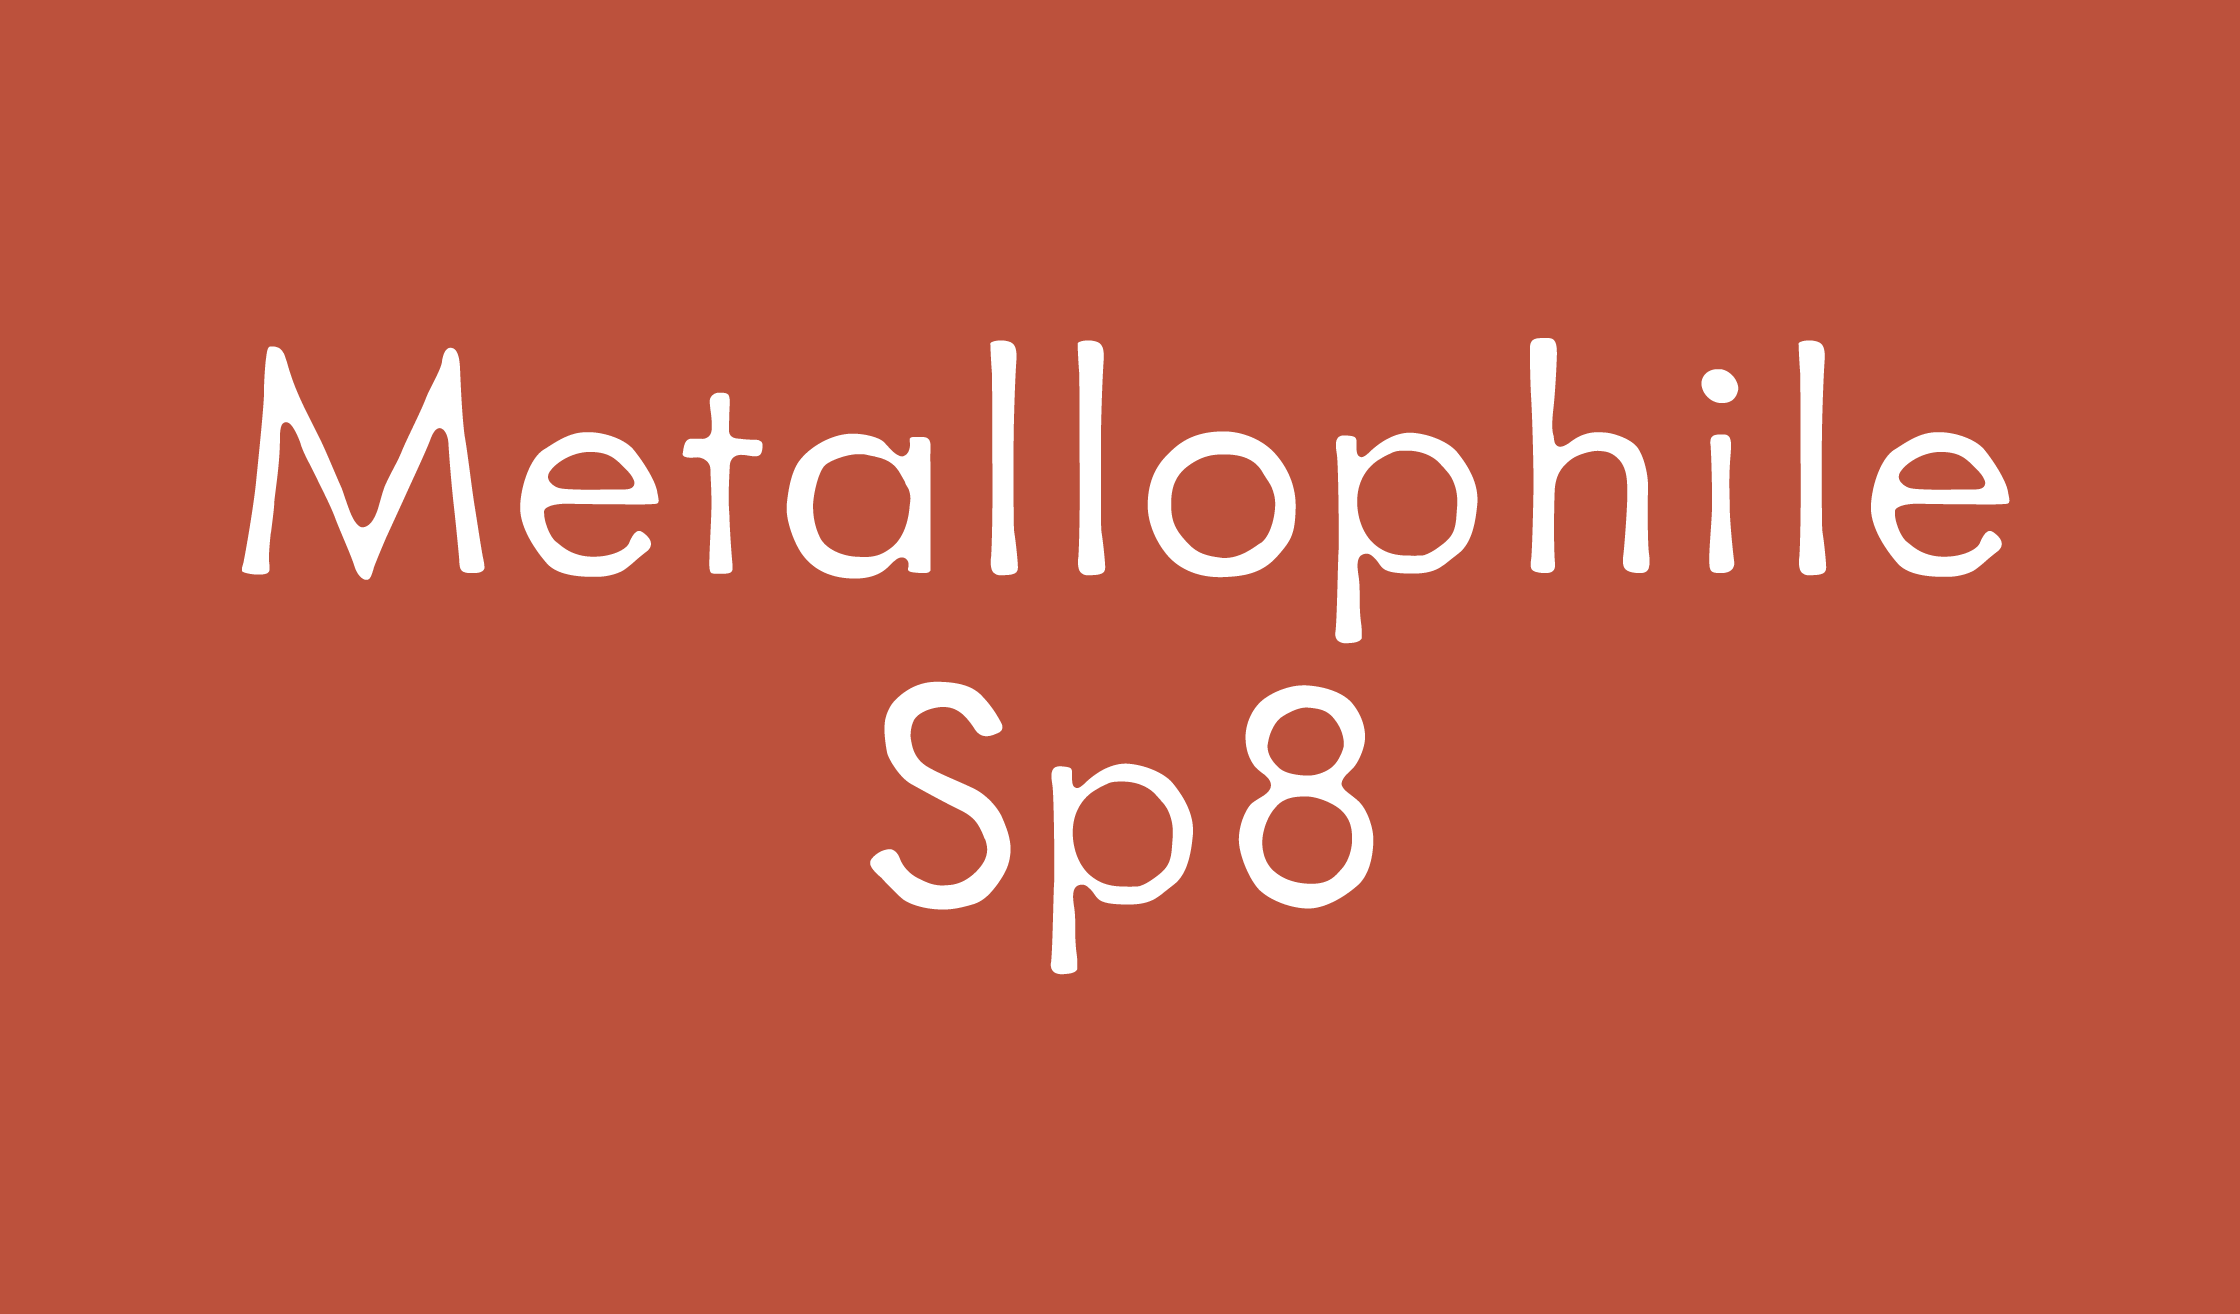 Metallophile Sp8 Banner Name 2240